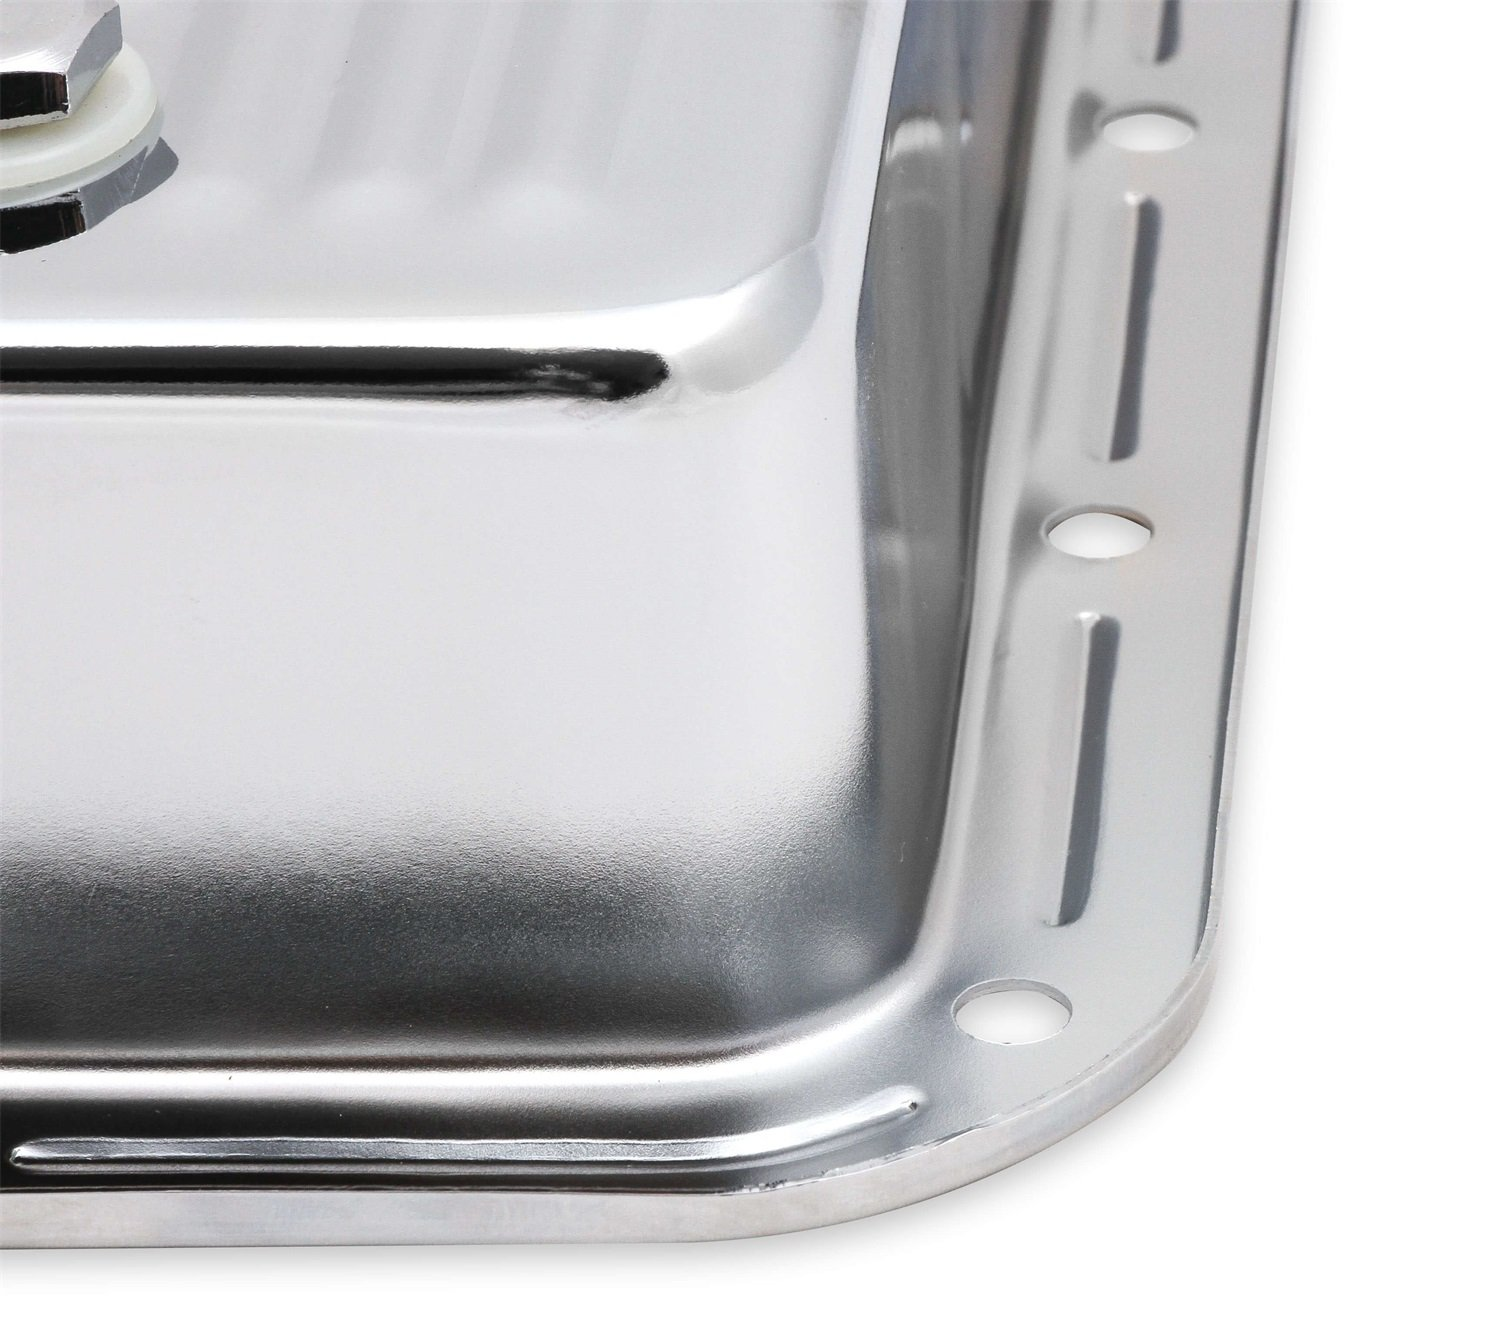 MR GASKET 9768CMRG Chrome Automatic Transmission Oil Pan Gm 200-4R